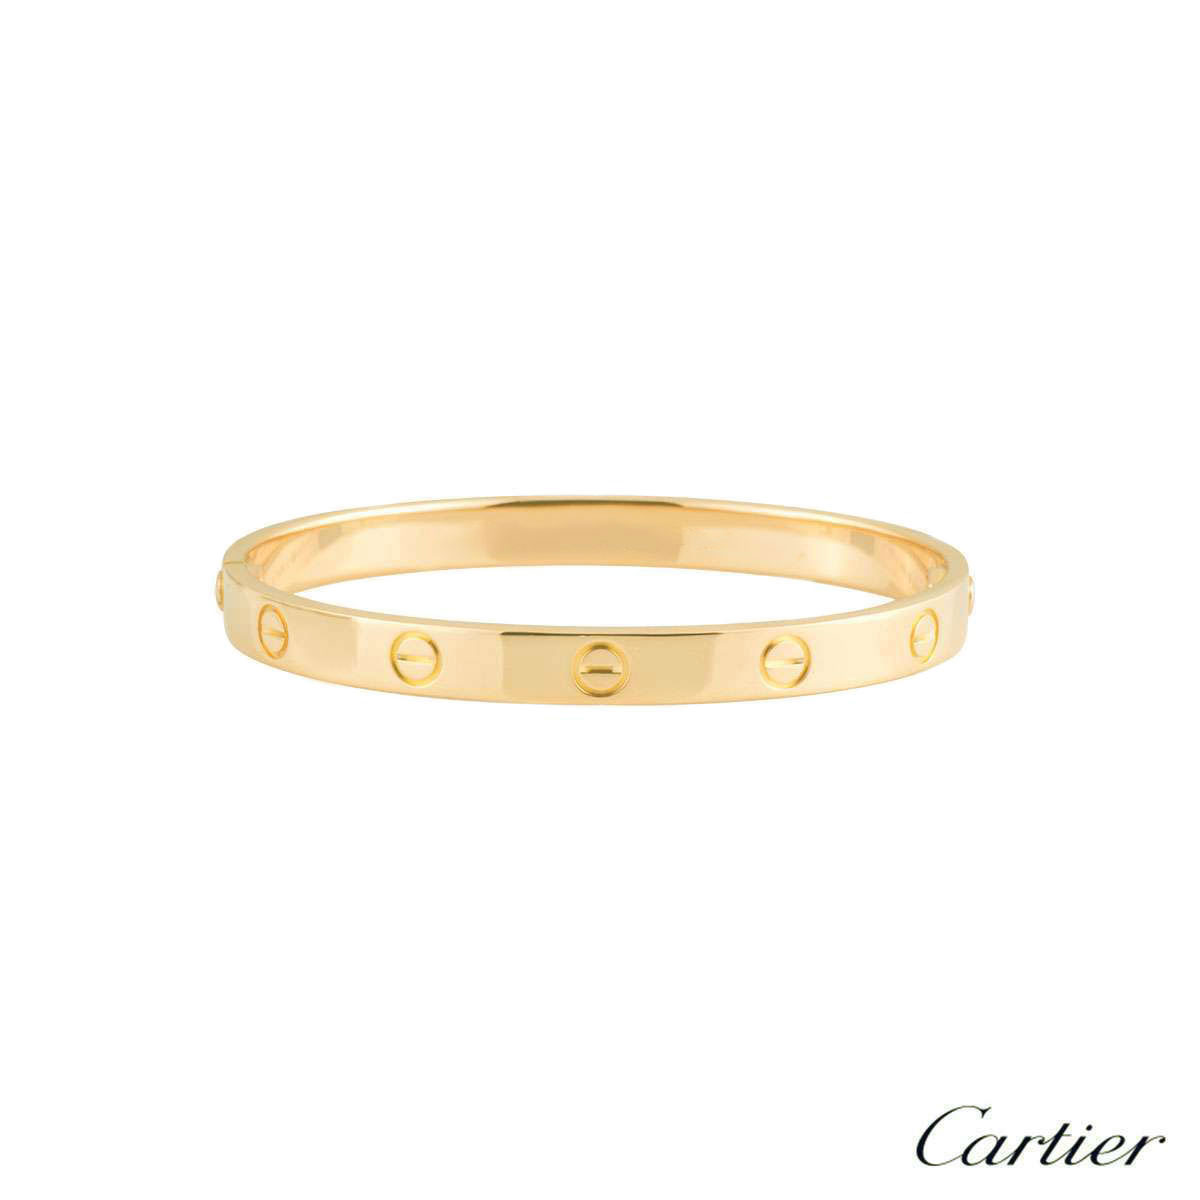 Cartier Yellow Gold Plain Love Bracelet Size 19 B6035519